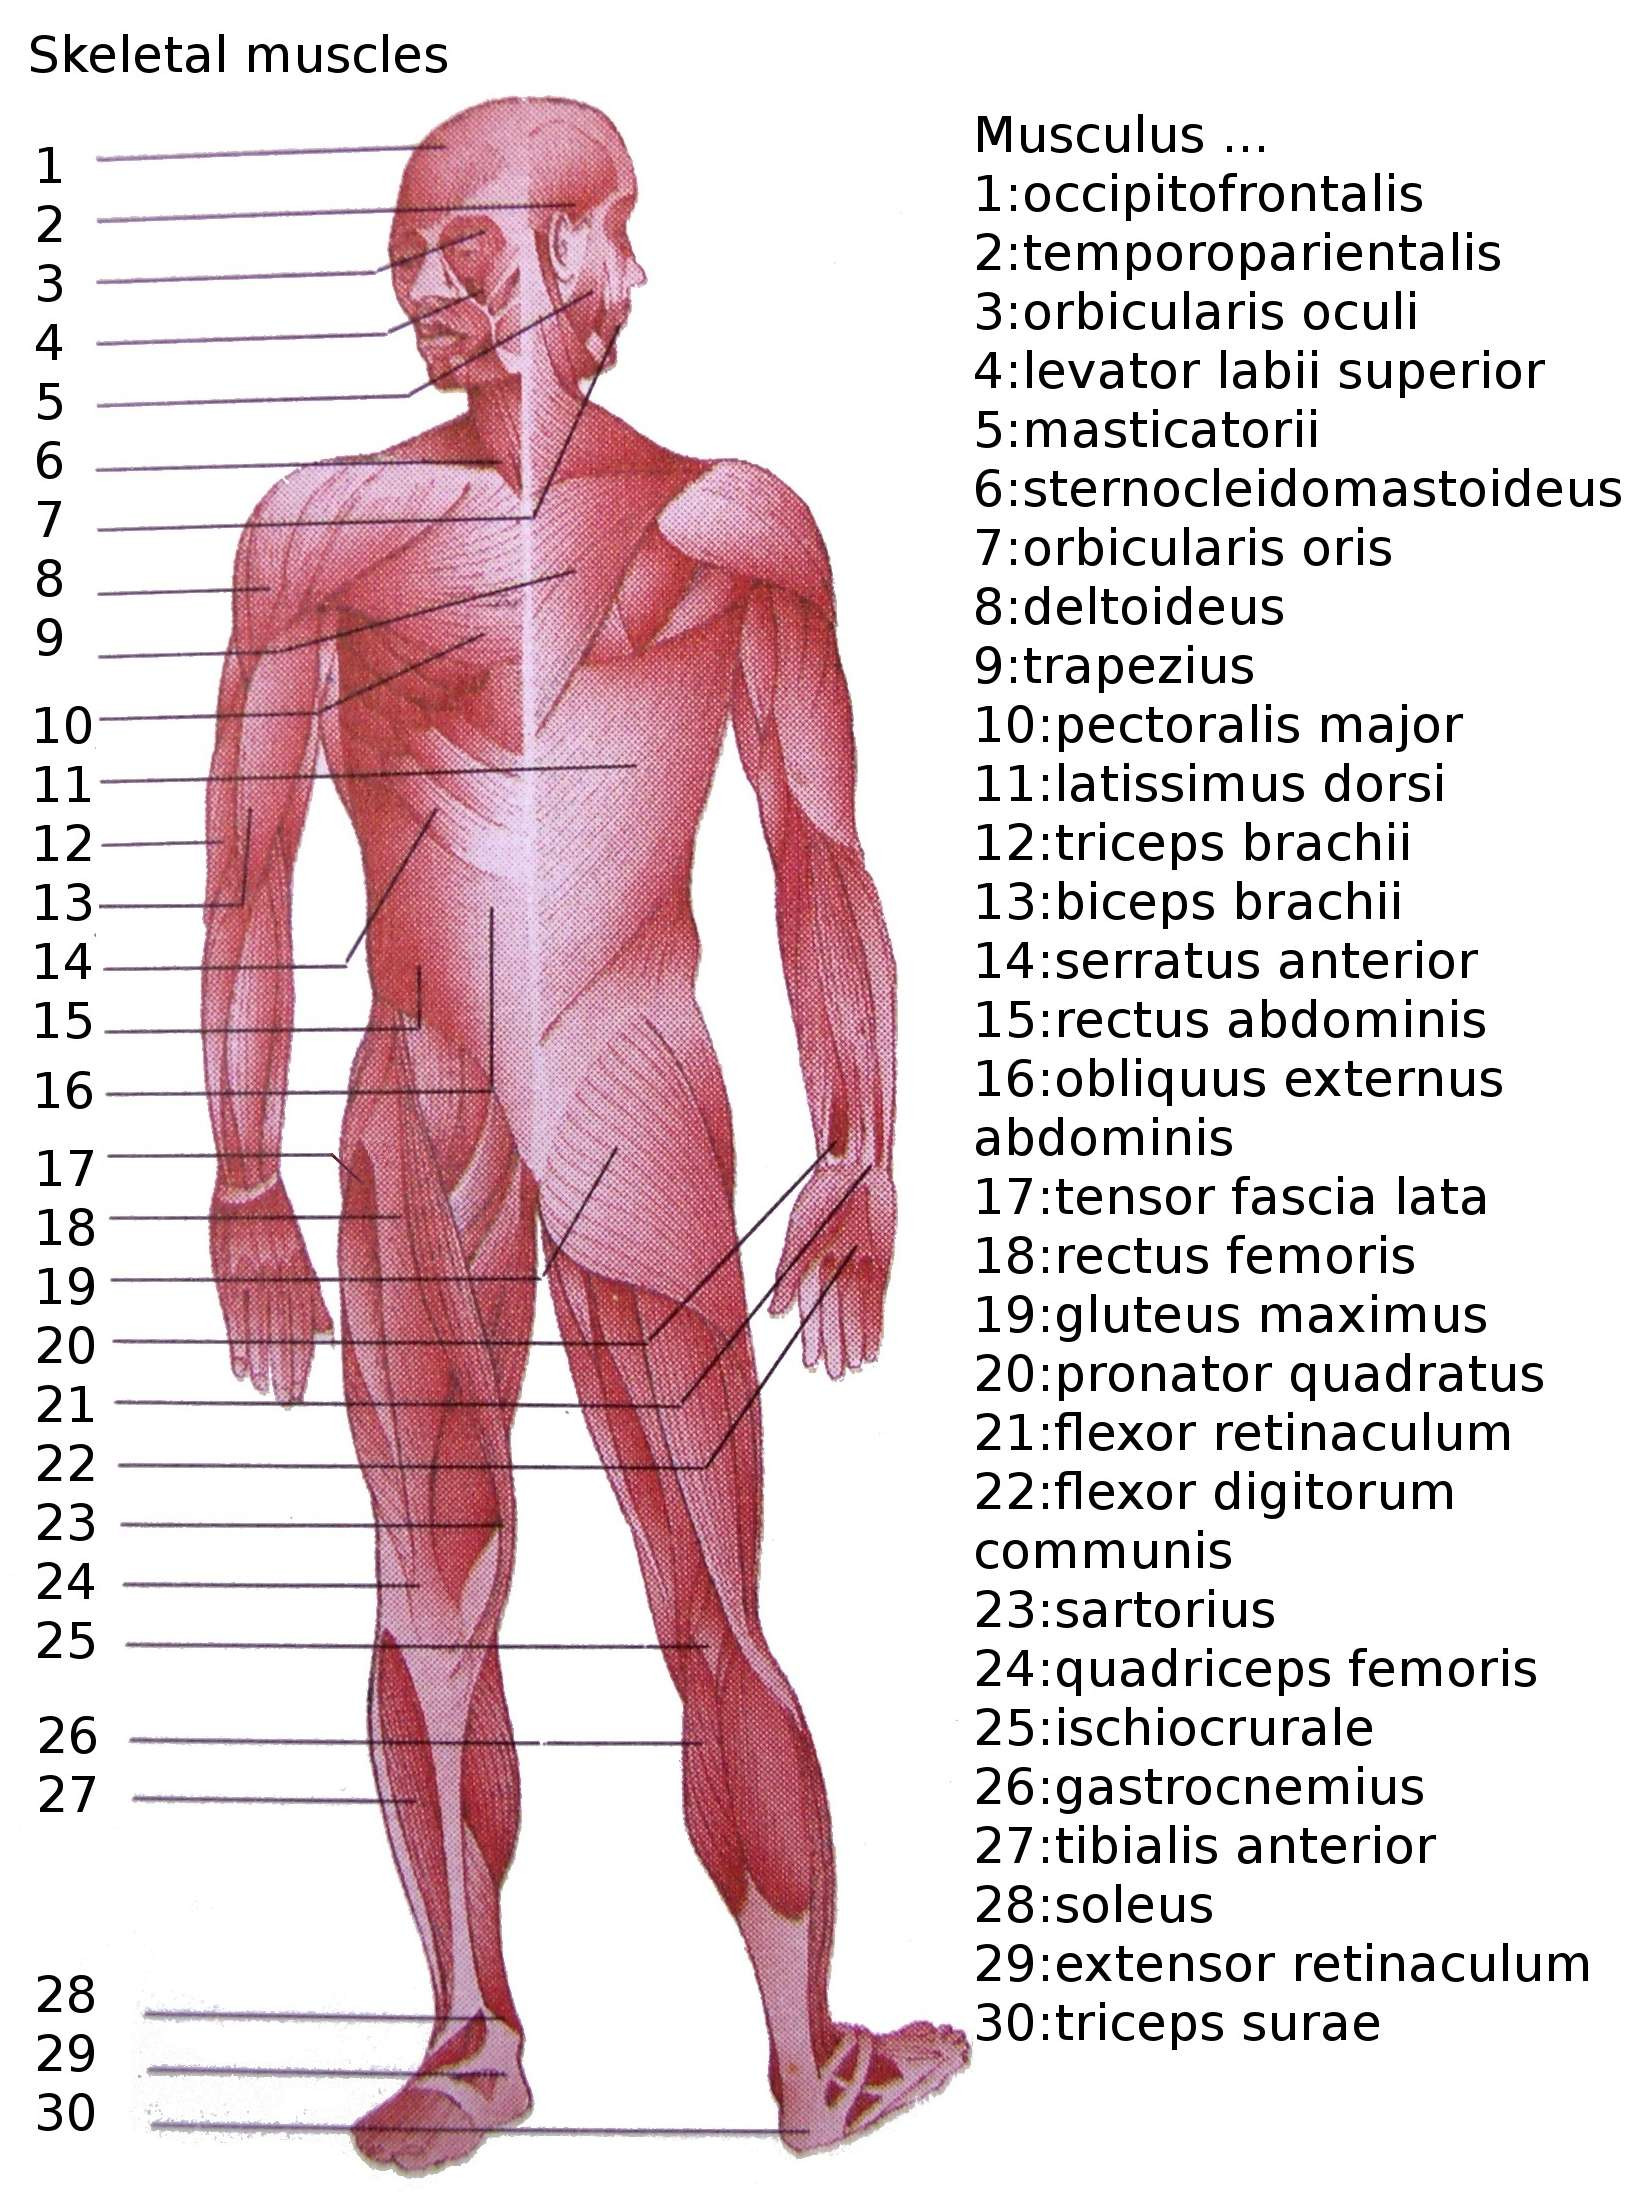 Printable Muscle Diagram List Of Skeletal Muscles Of the Human Body